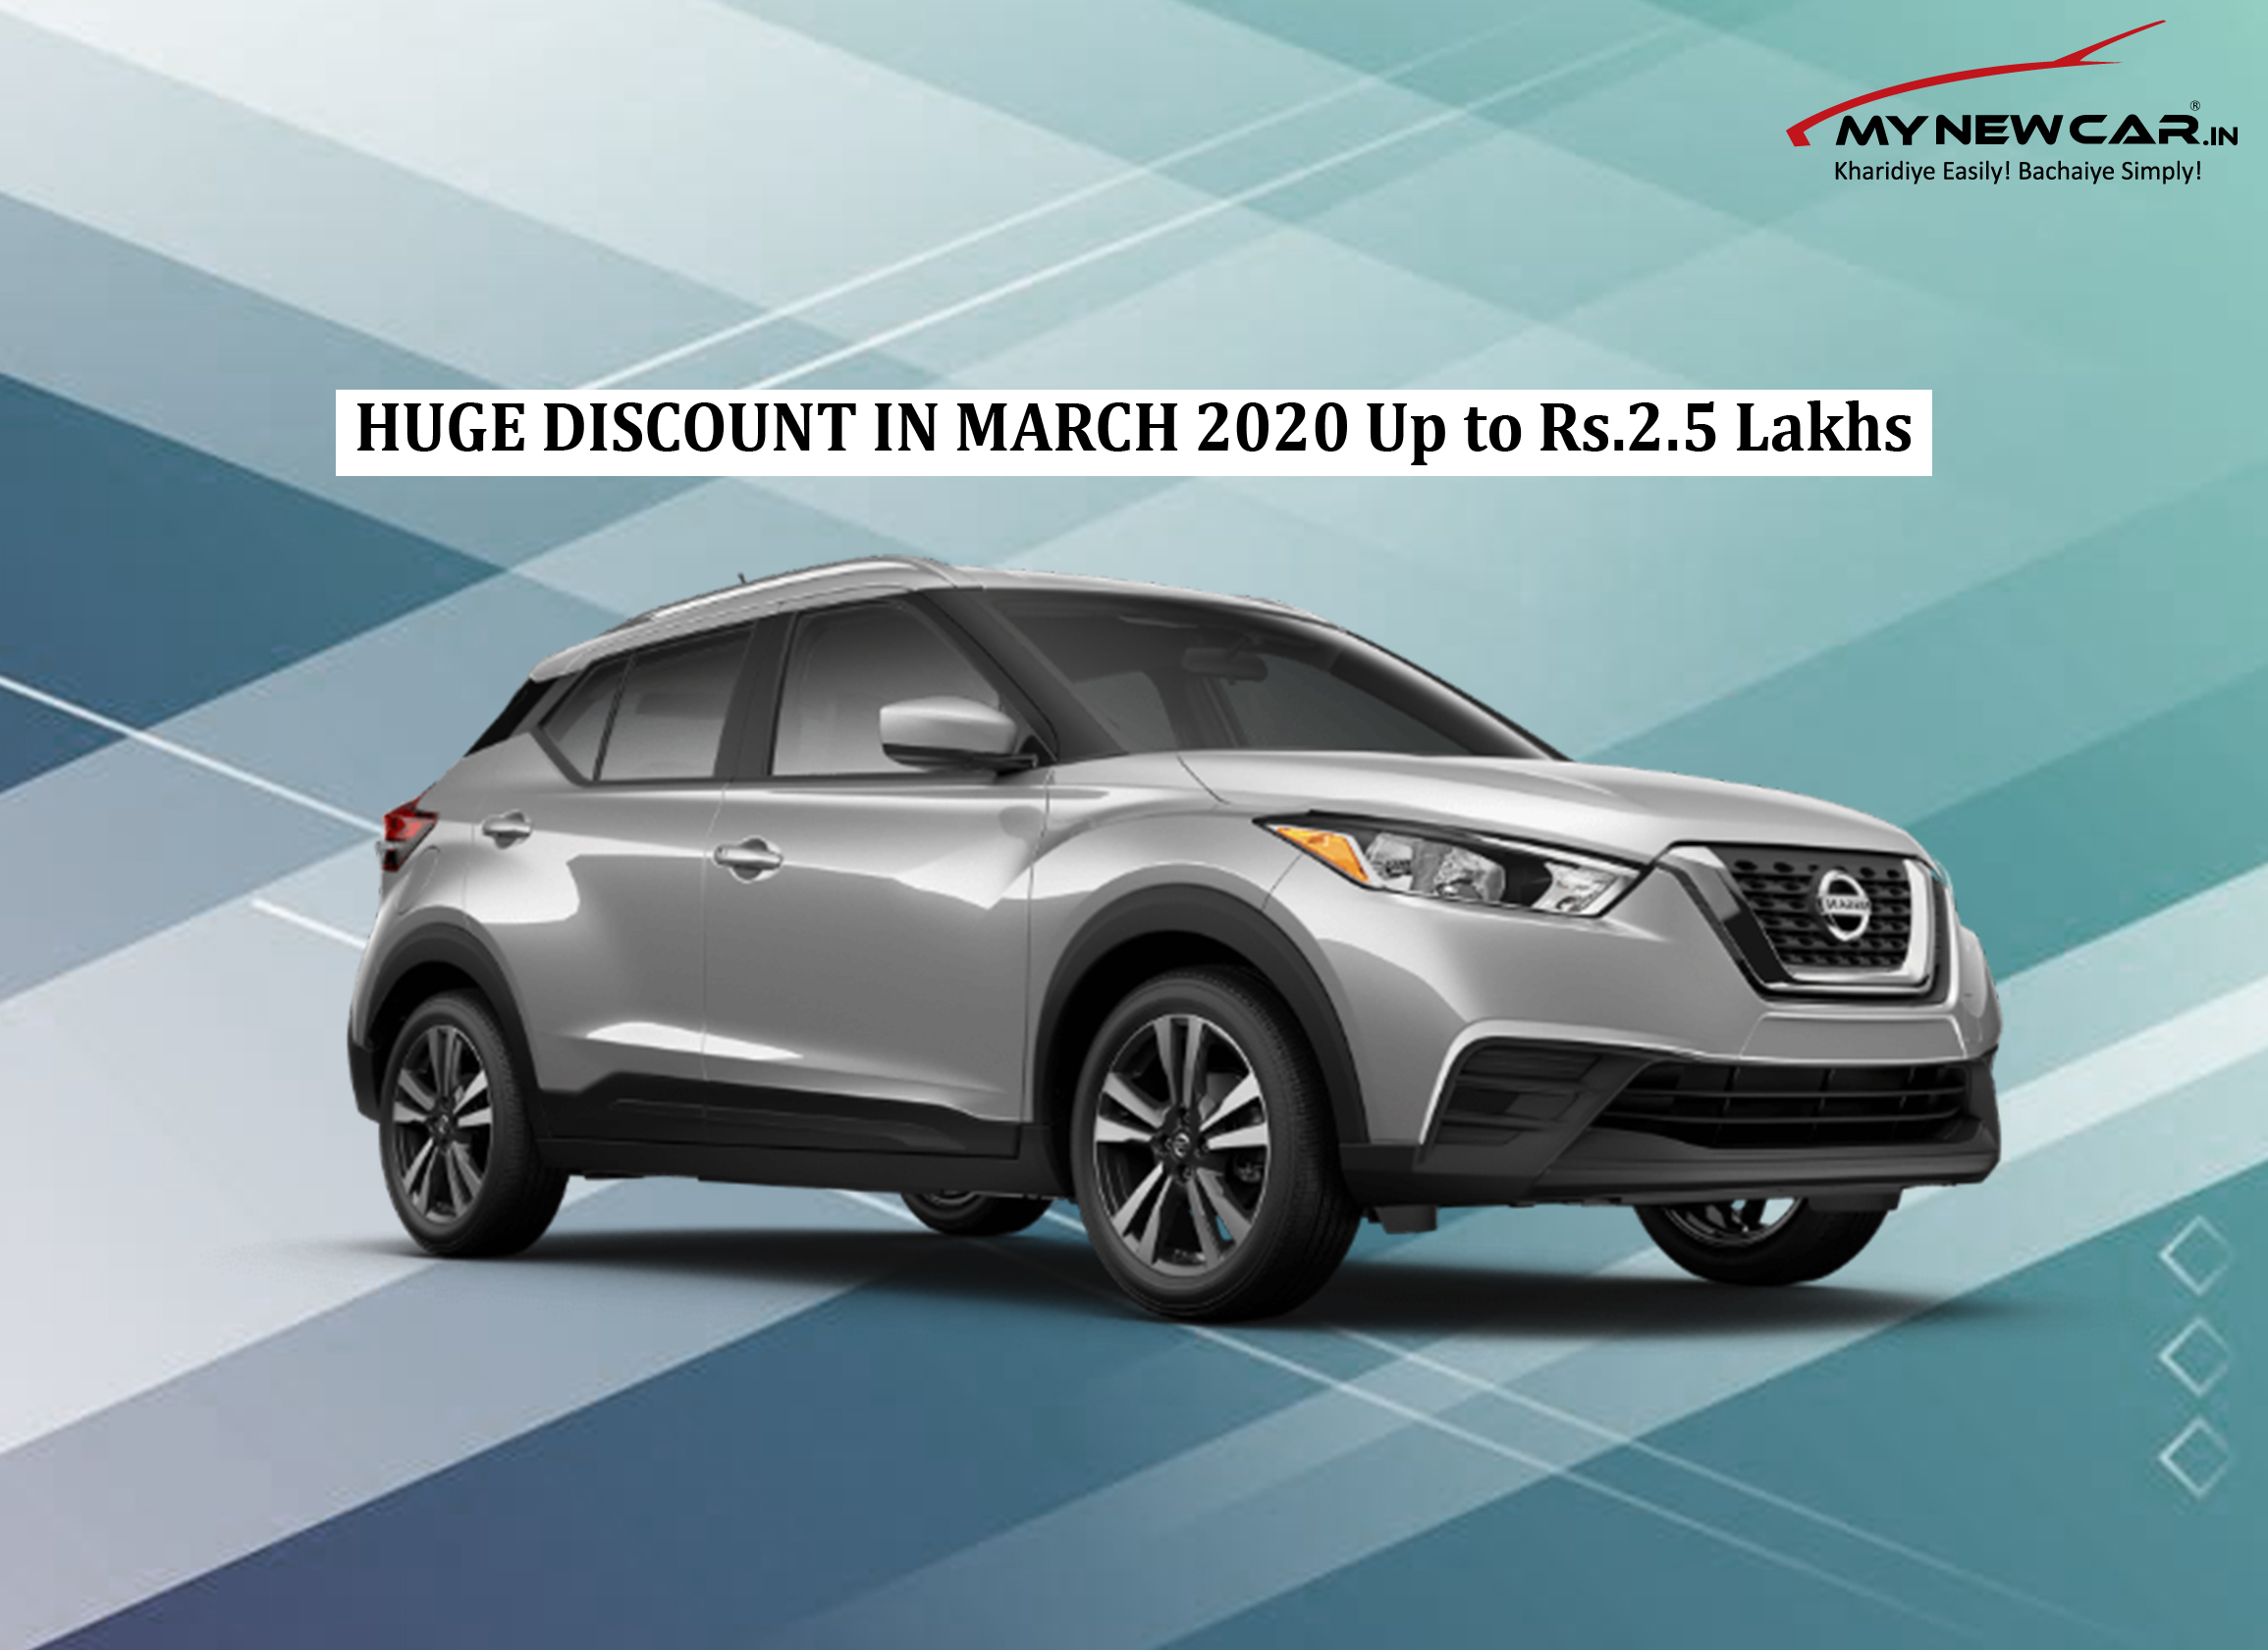 HUGE DISCOUNT THIS MARCH 2020 ON NISSAN KICKS